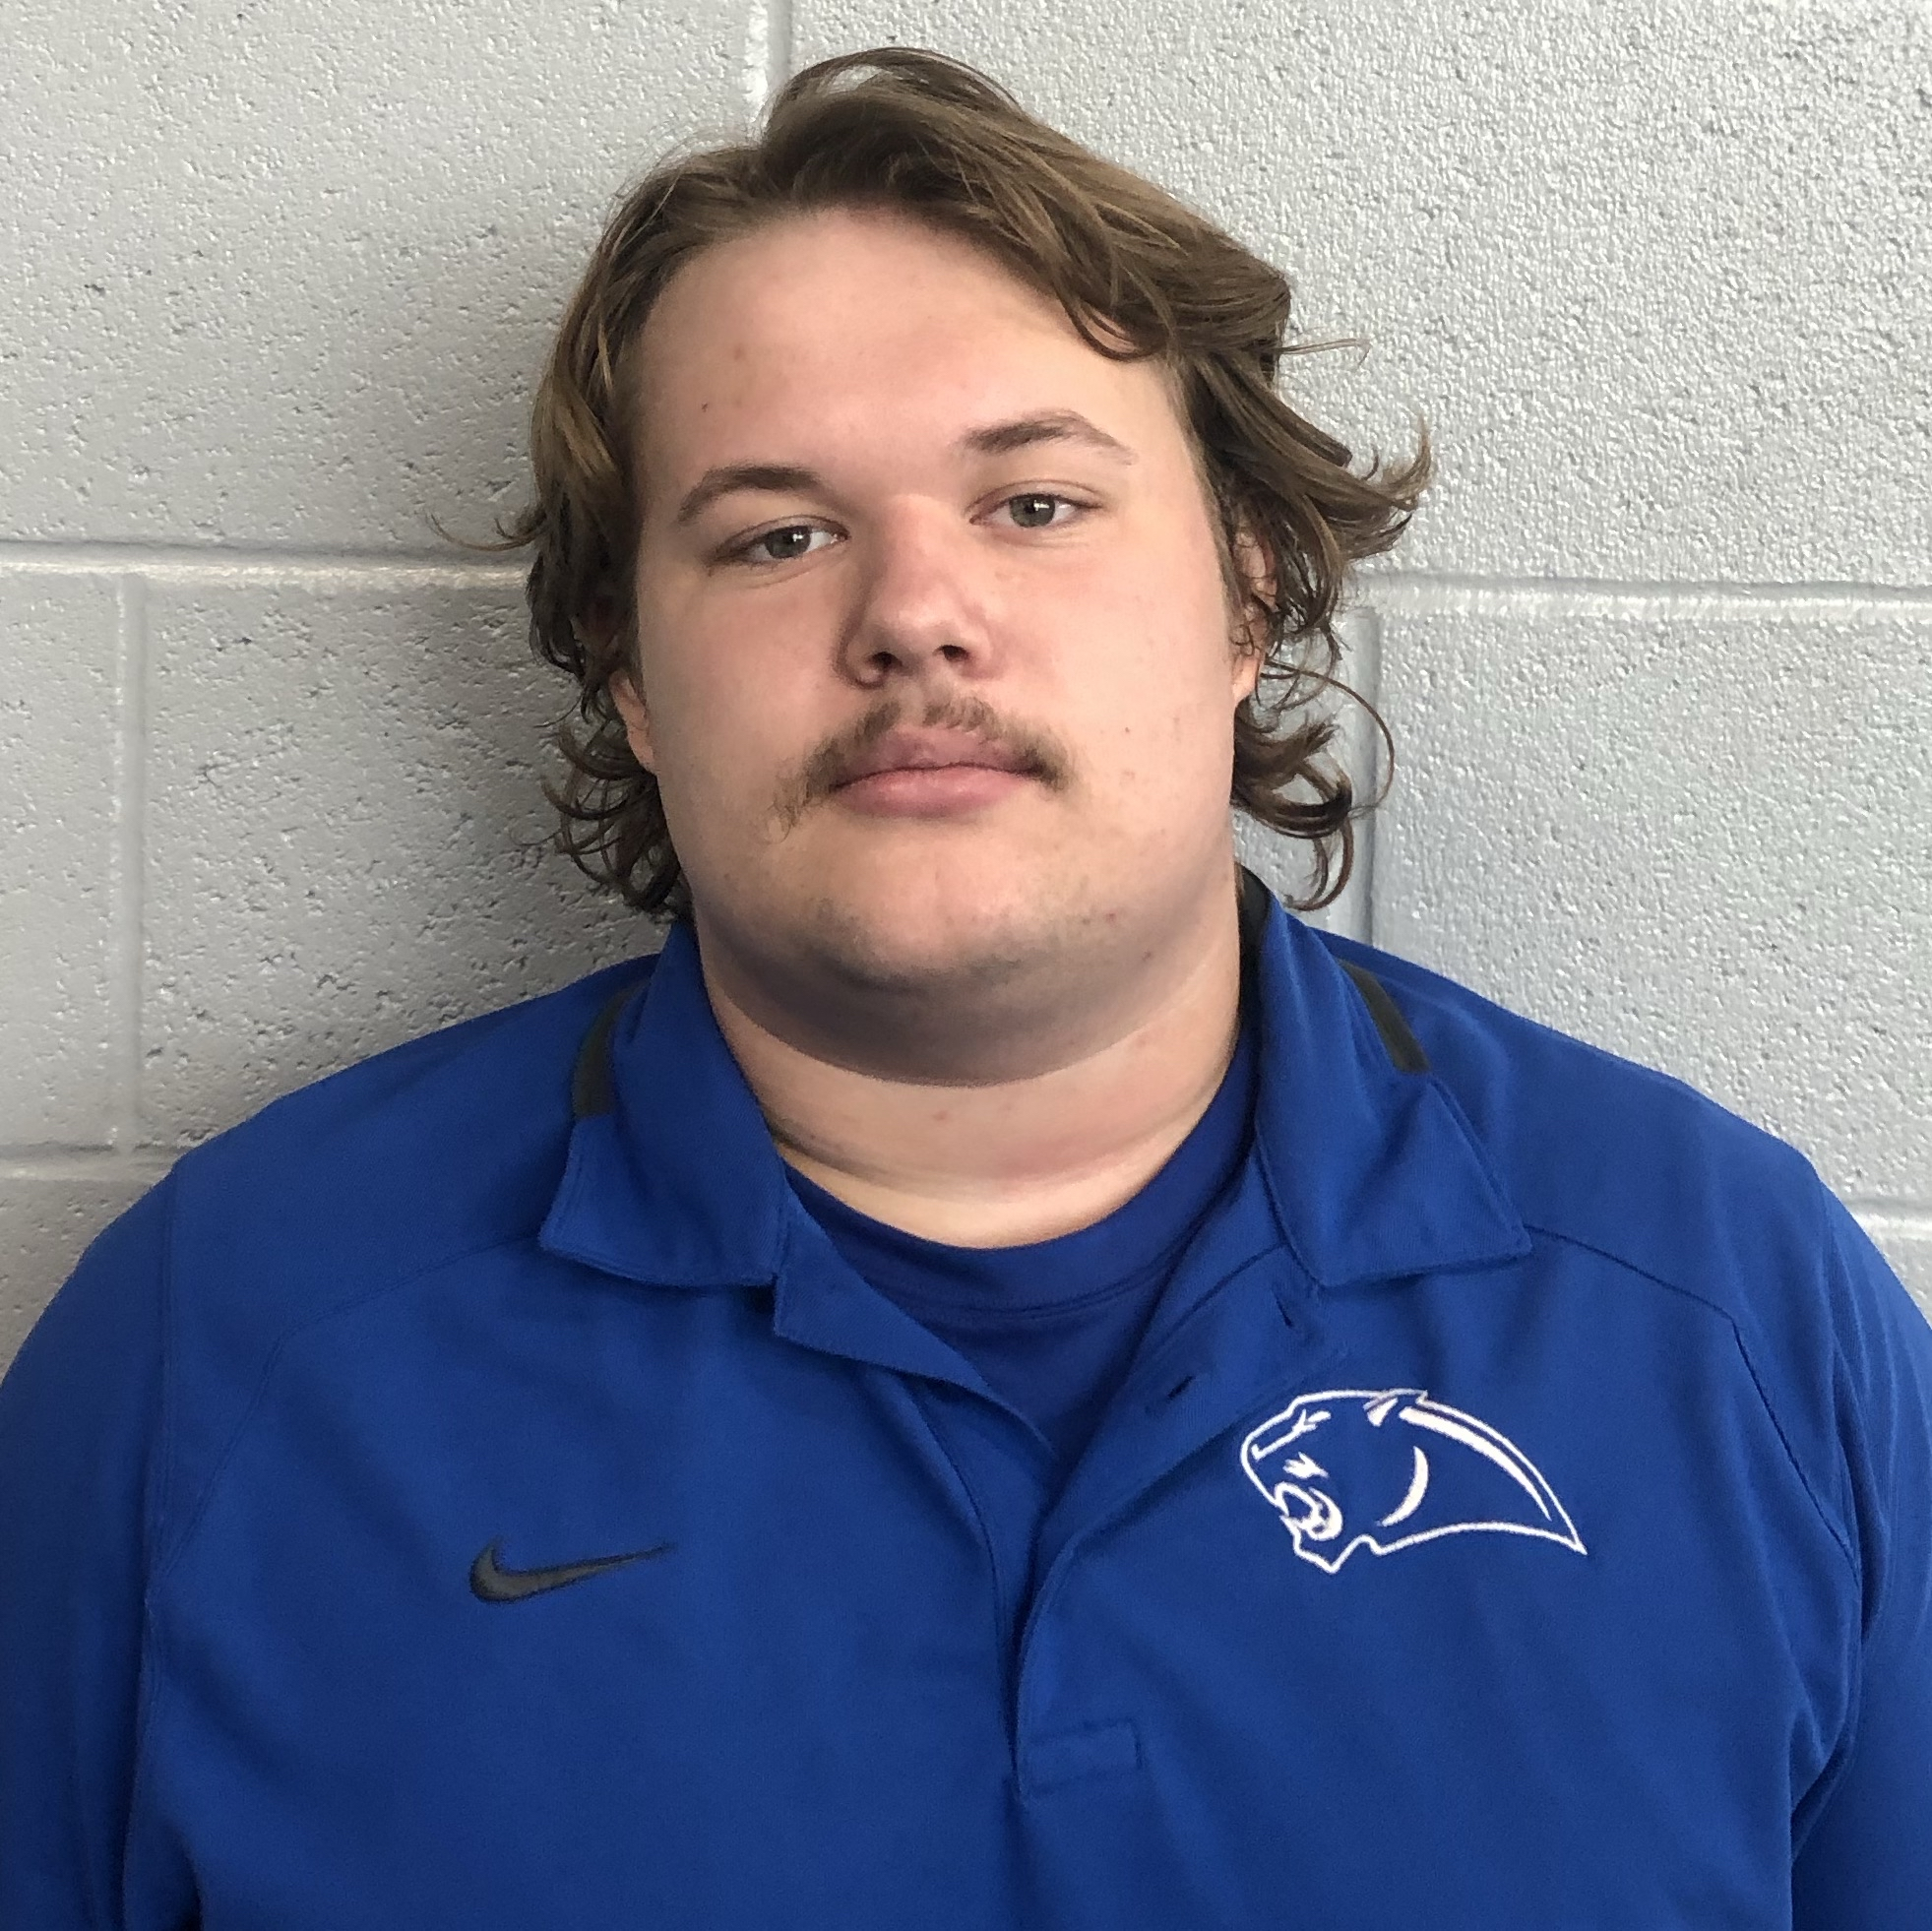 roster photo for Jackson Spears